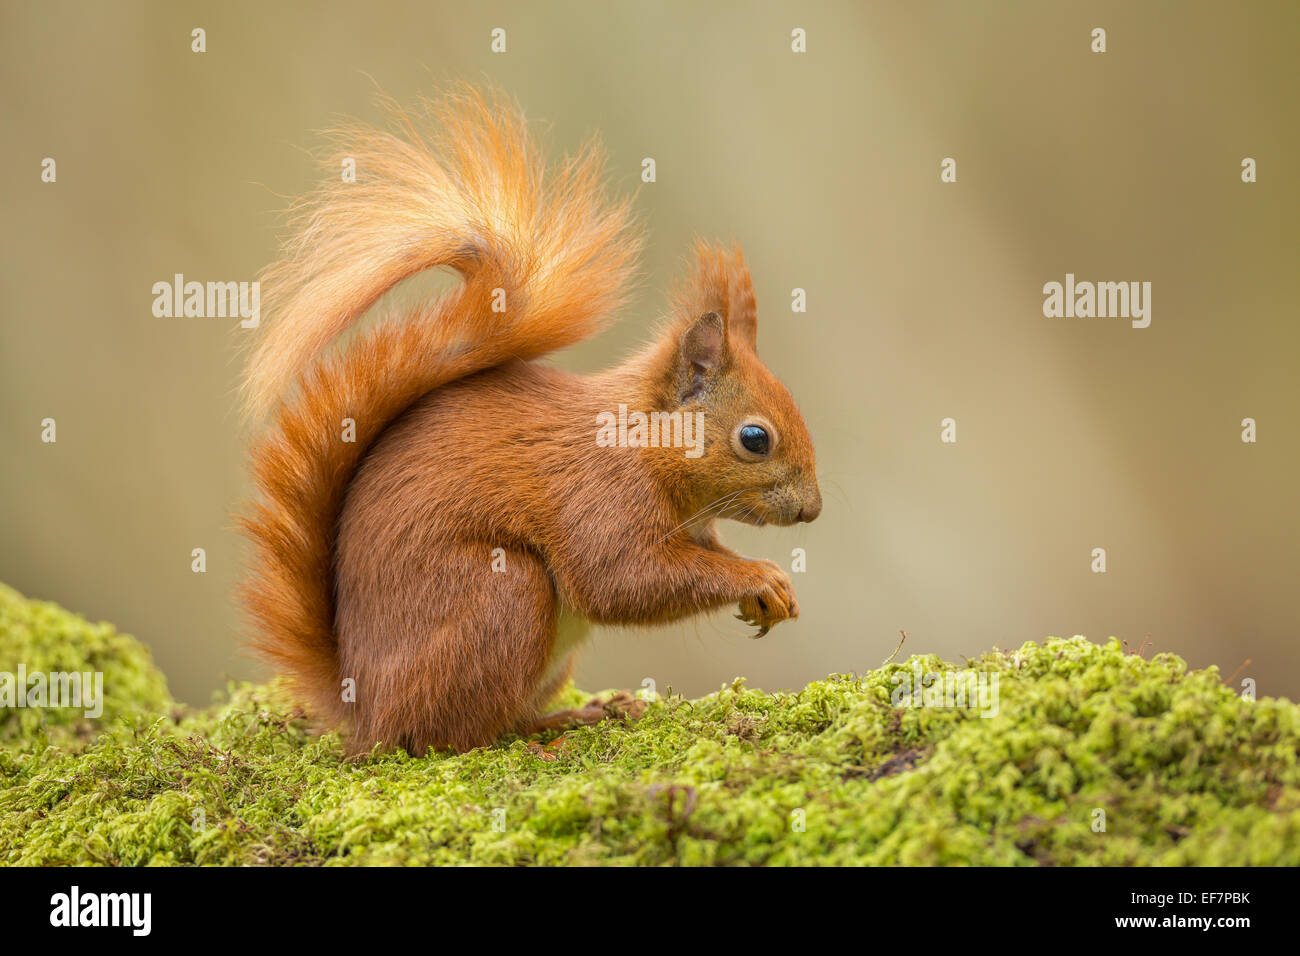 Wild Red Squirrel (Sciurus vulgaris), on a mossy fallen Oak tree, photographed on the Isle of Wight, UK Stock Photo